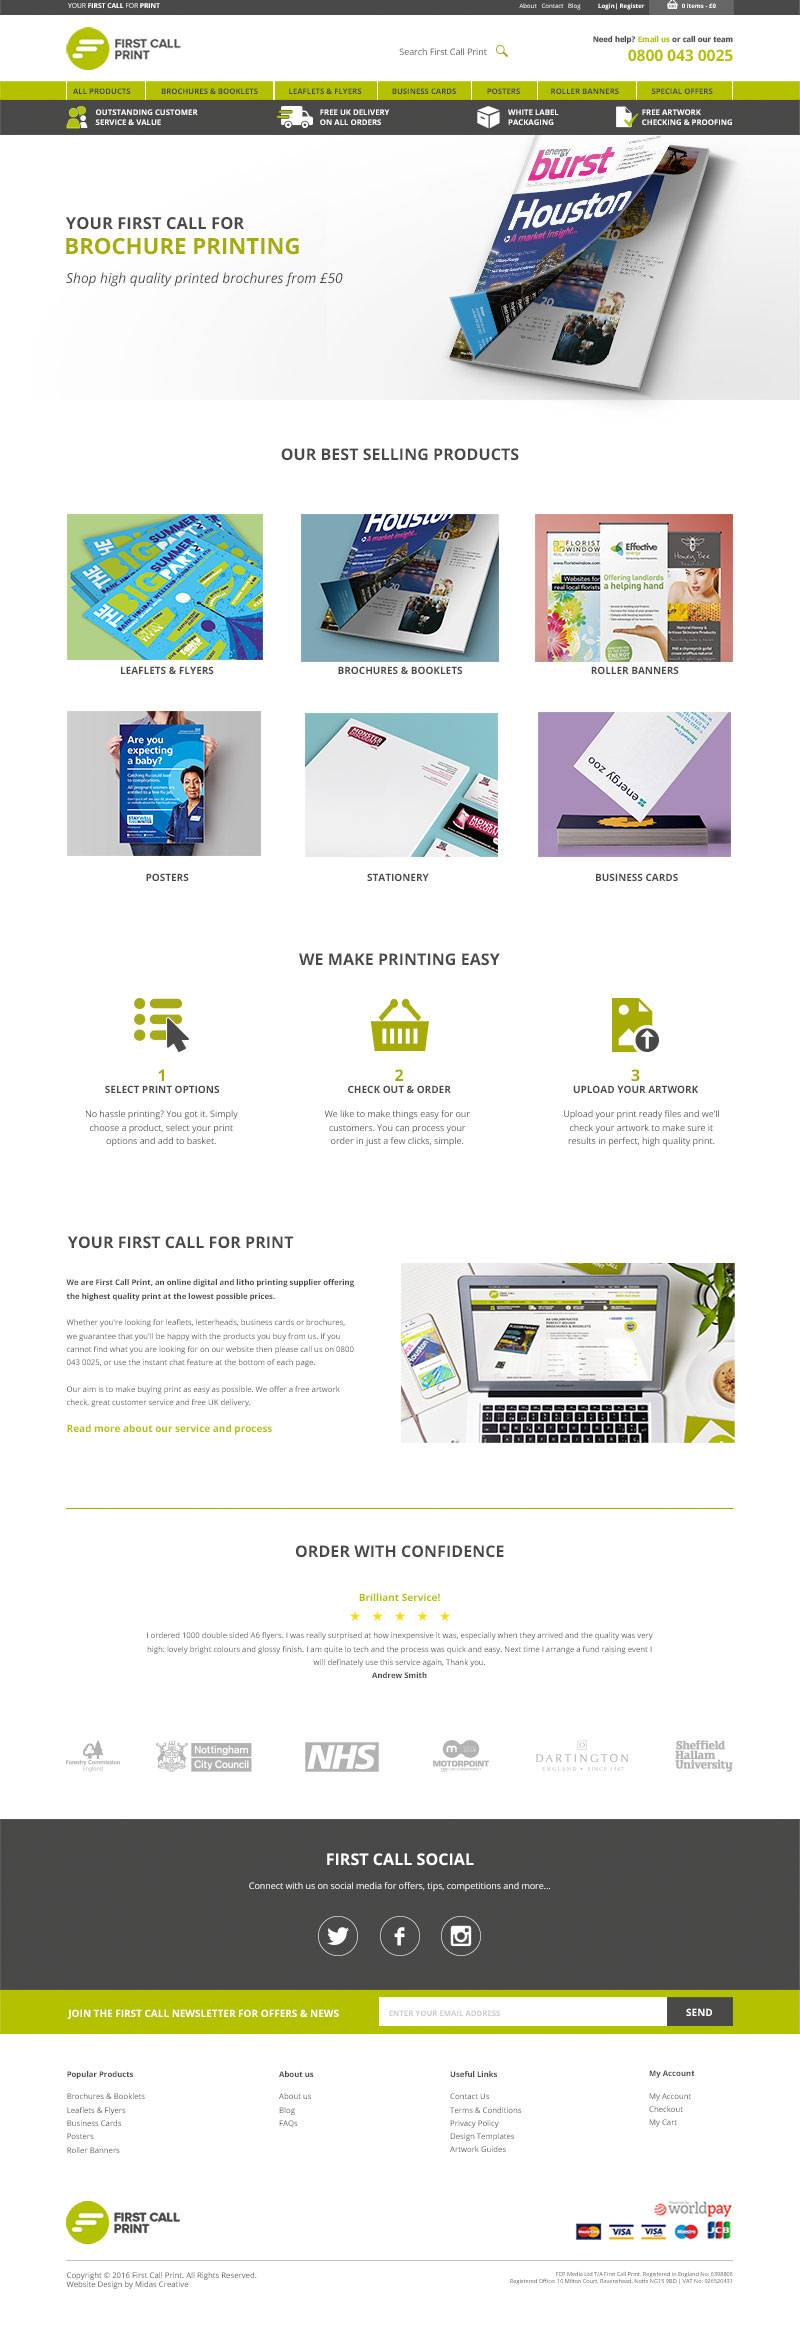 Online printing web design for First Call Print